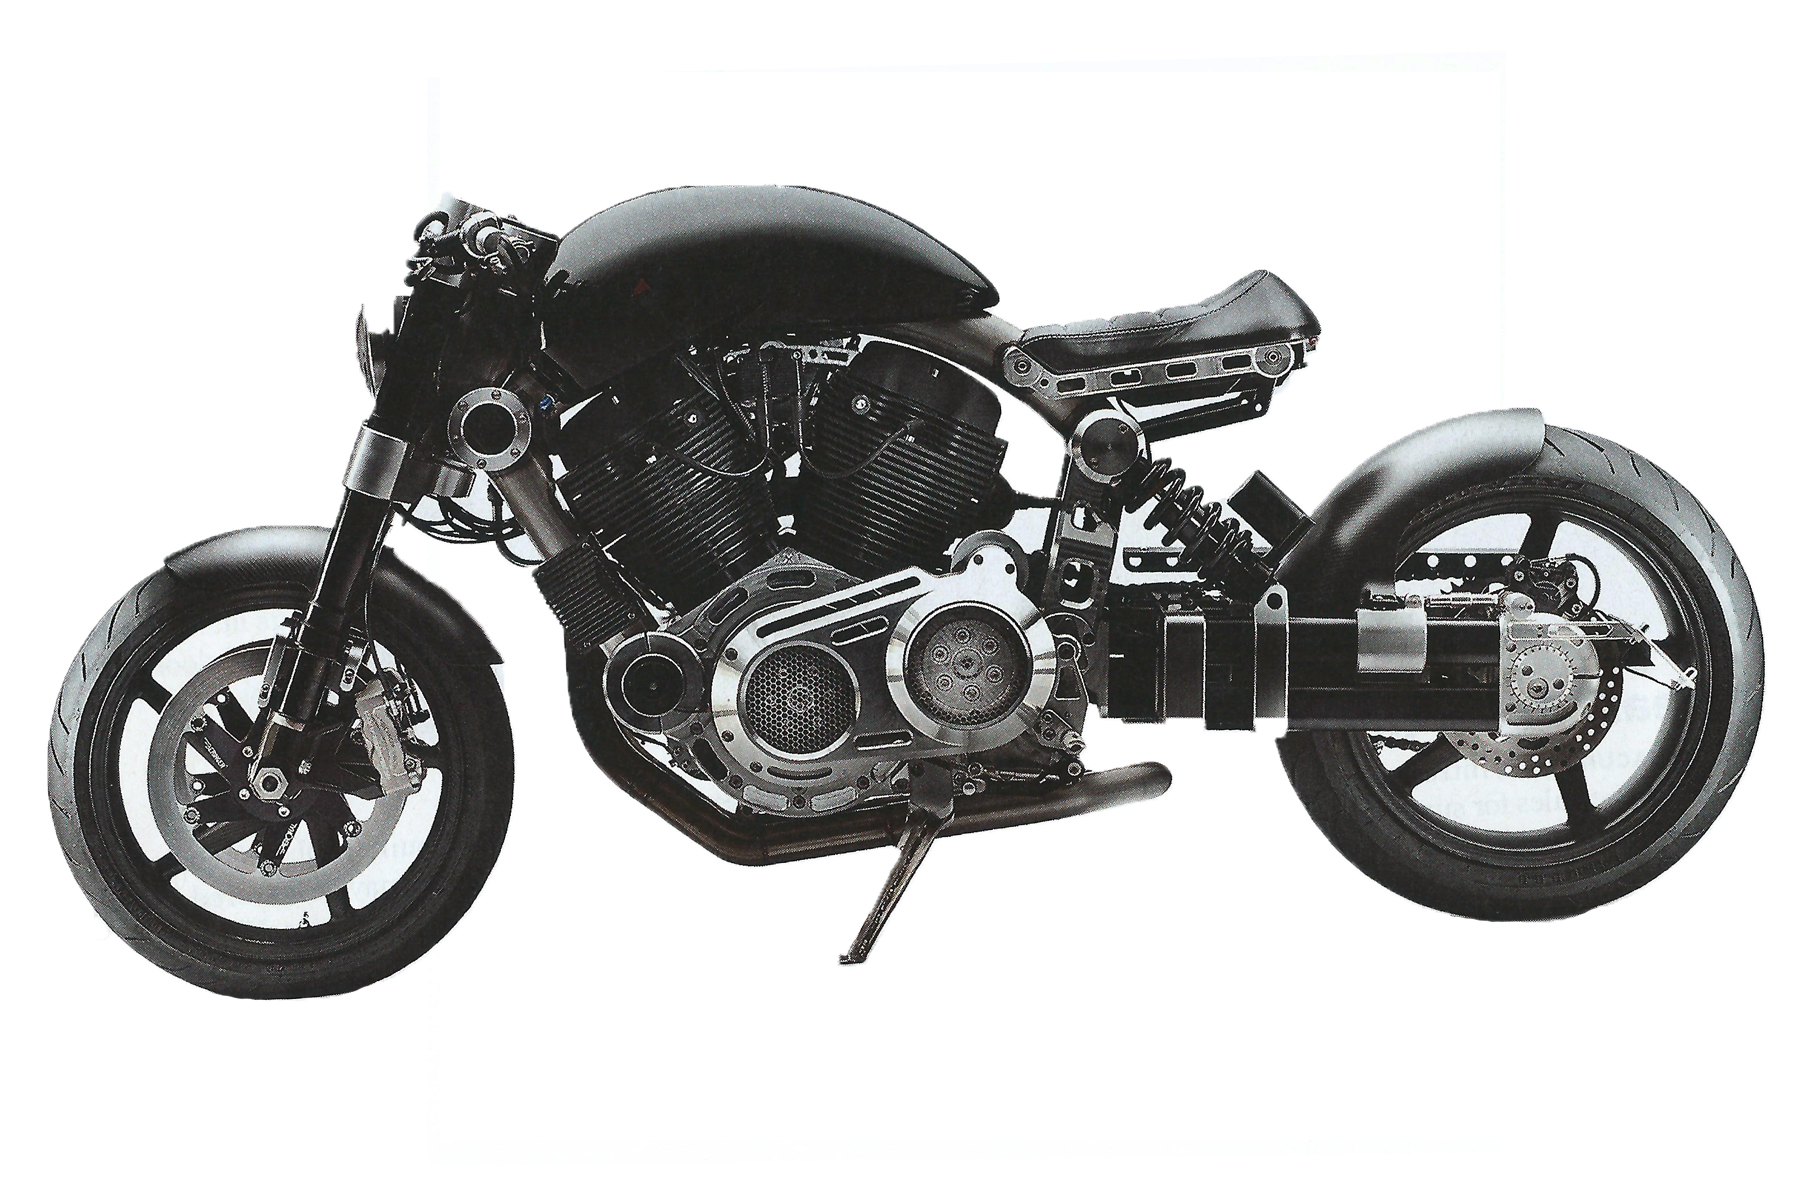 Confederate X132 Hellcat  Image:  Men's Journal , September 2012